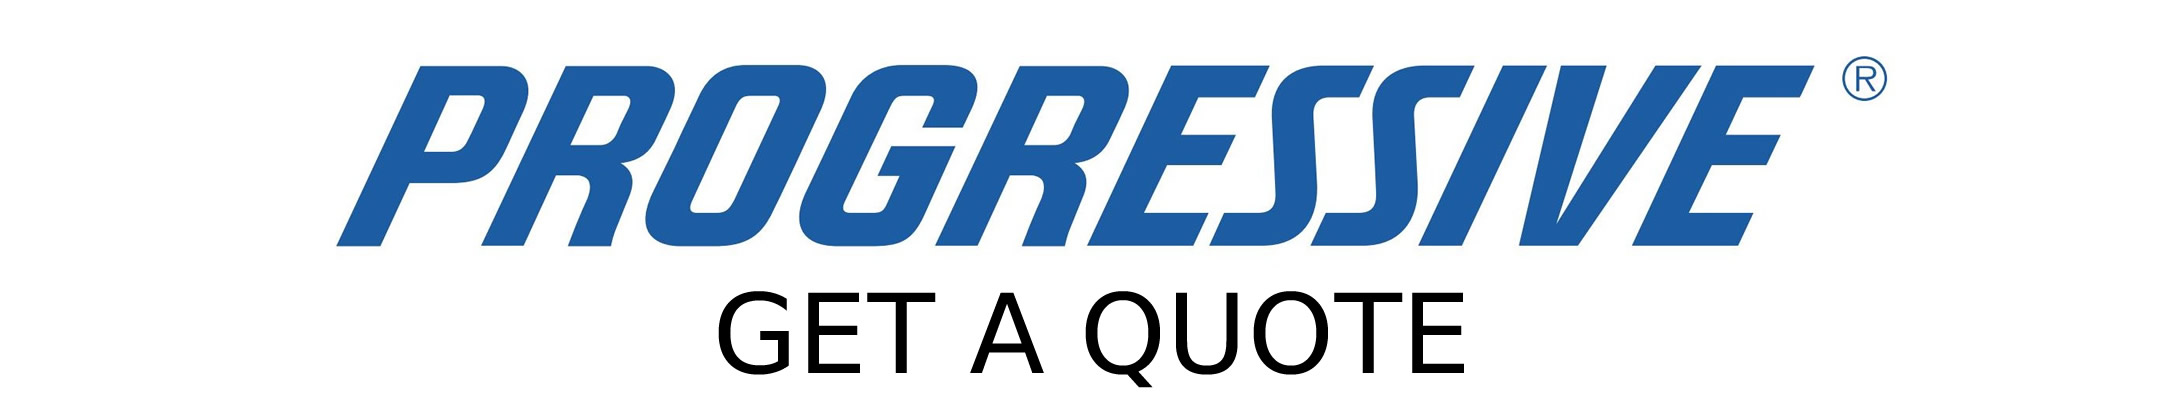 Progressive Get A Quote  Quotes Of The Day